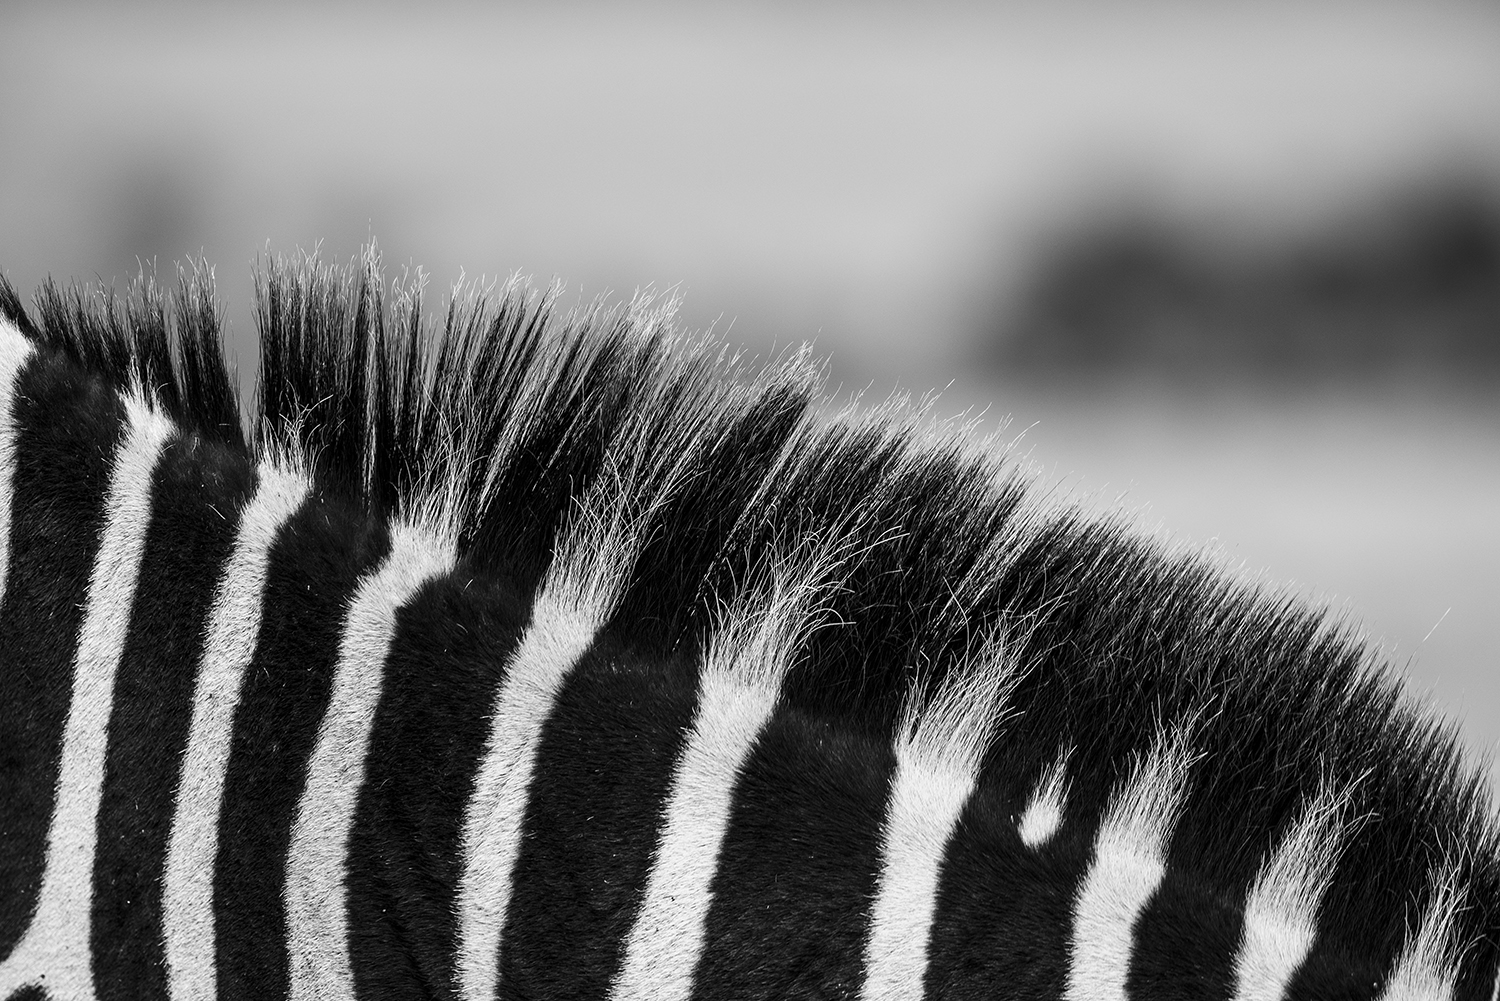 Zebra stripes detailed photography